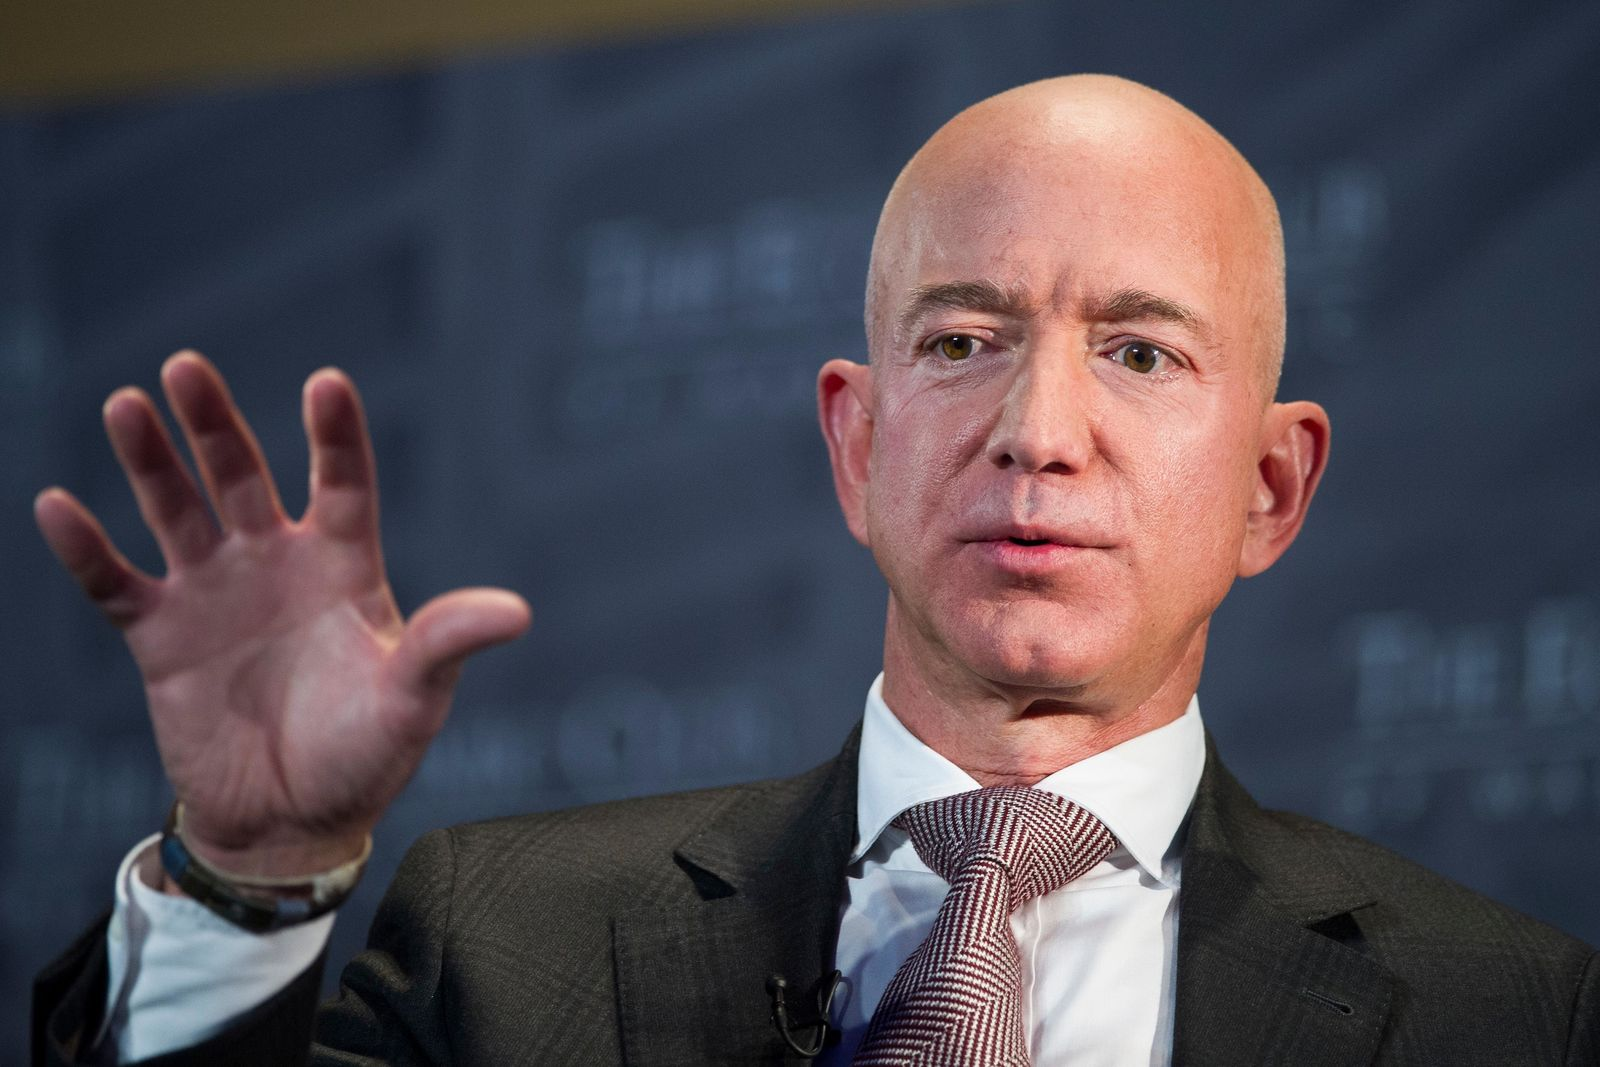 FILE- In this Sept. 13, 2018, file photo Jeff Bezos, Amazon founder and CEO, speaks at The Economic Club of Washington's Milestone Celebration in Washington.{ } (AP Photo/Cliff Owen, File)